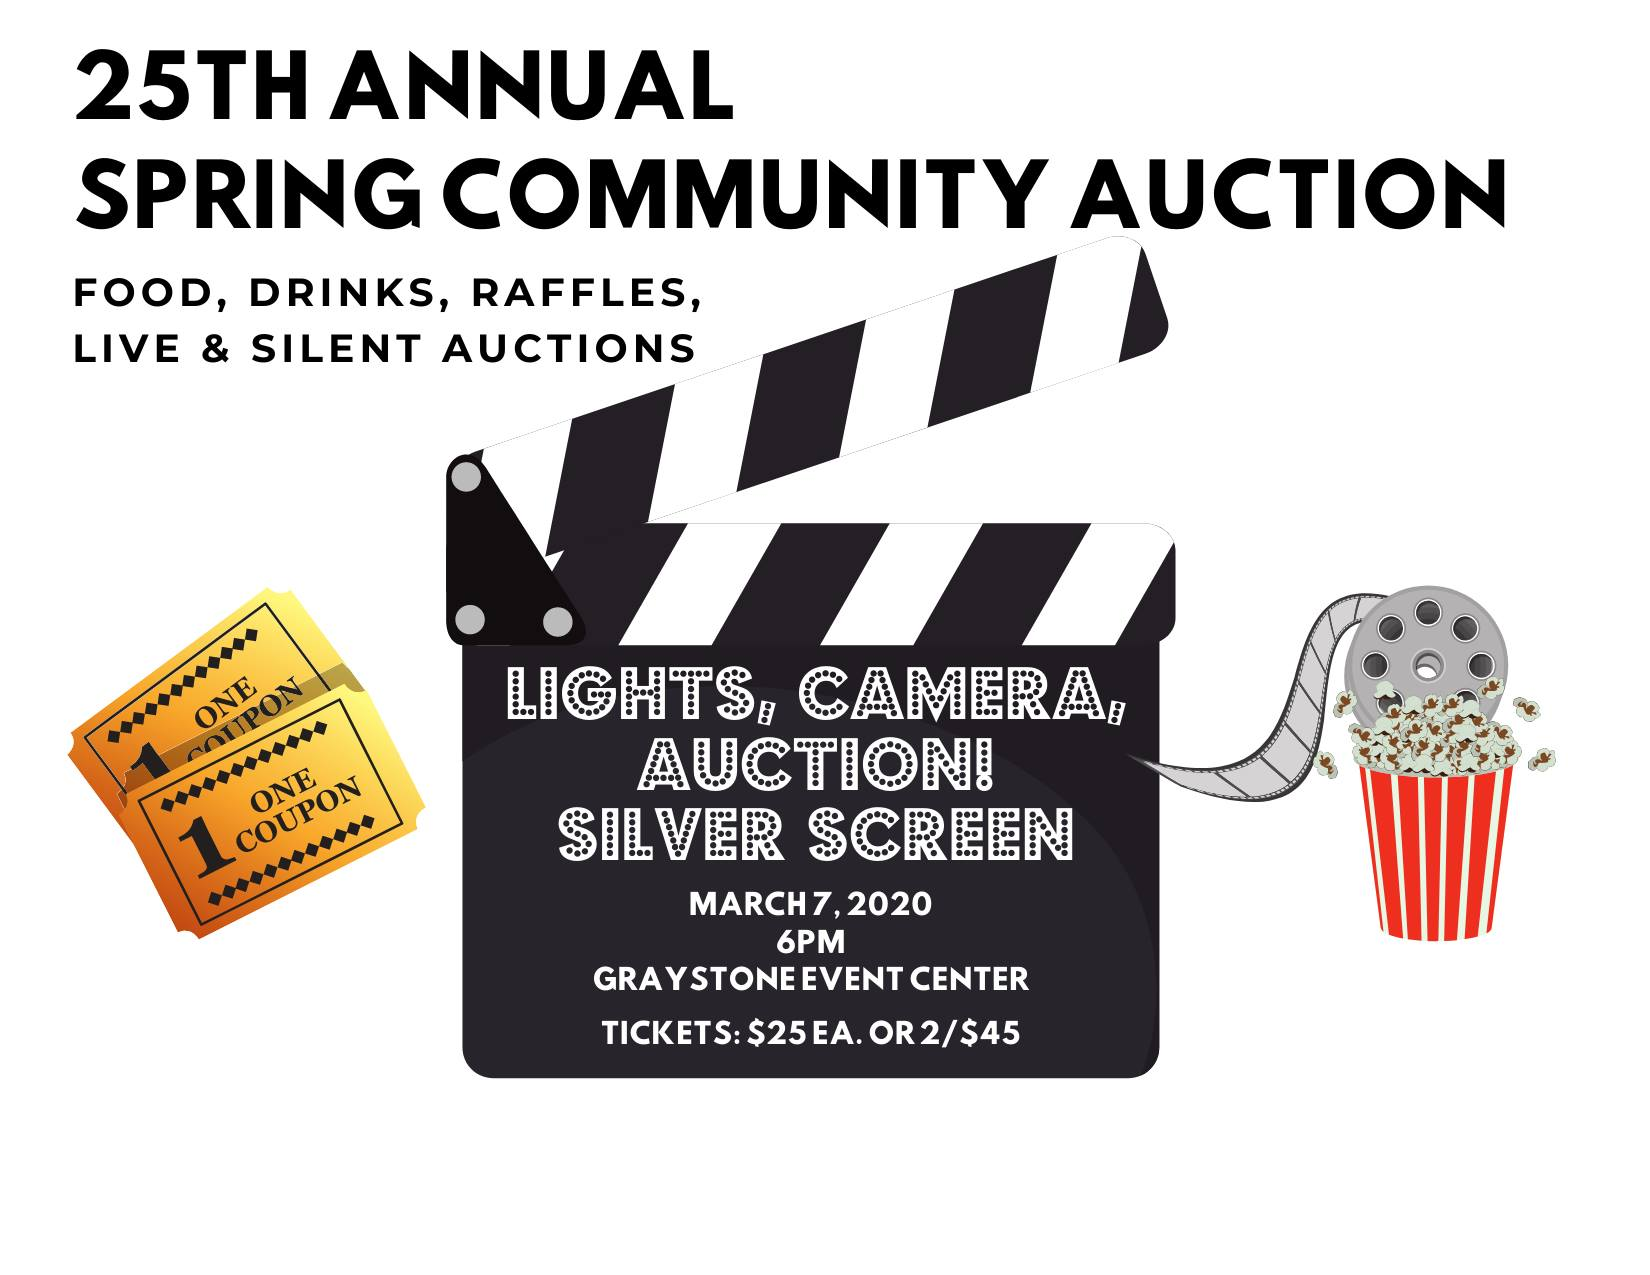 25th annual spring community auction